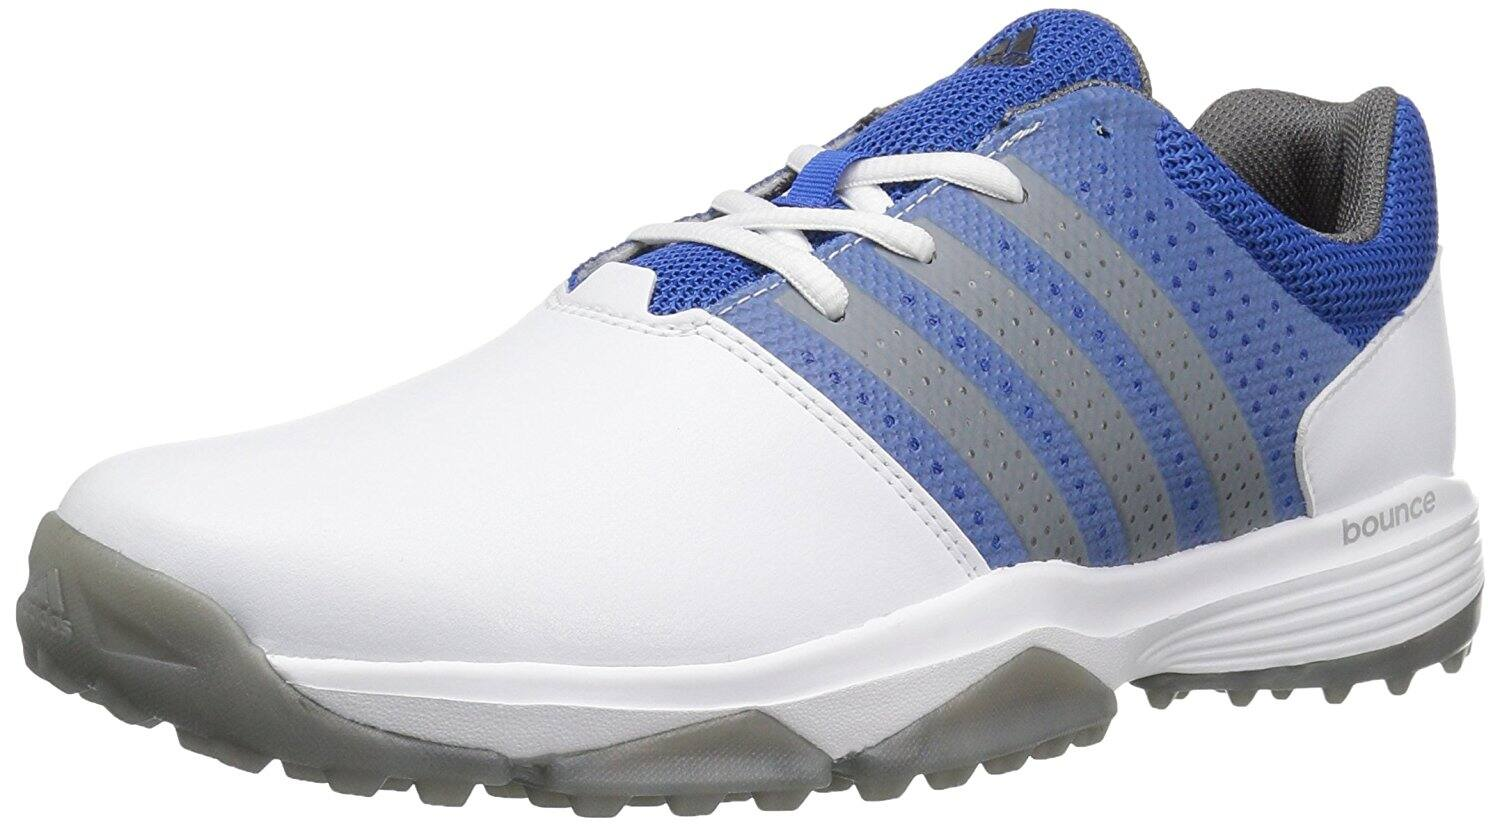 GOLF - Mens Adidas 360 TRAXION SHOES (3 colors avail) $39.2